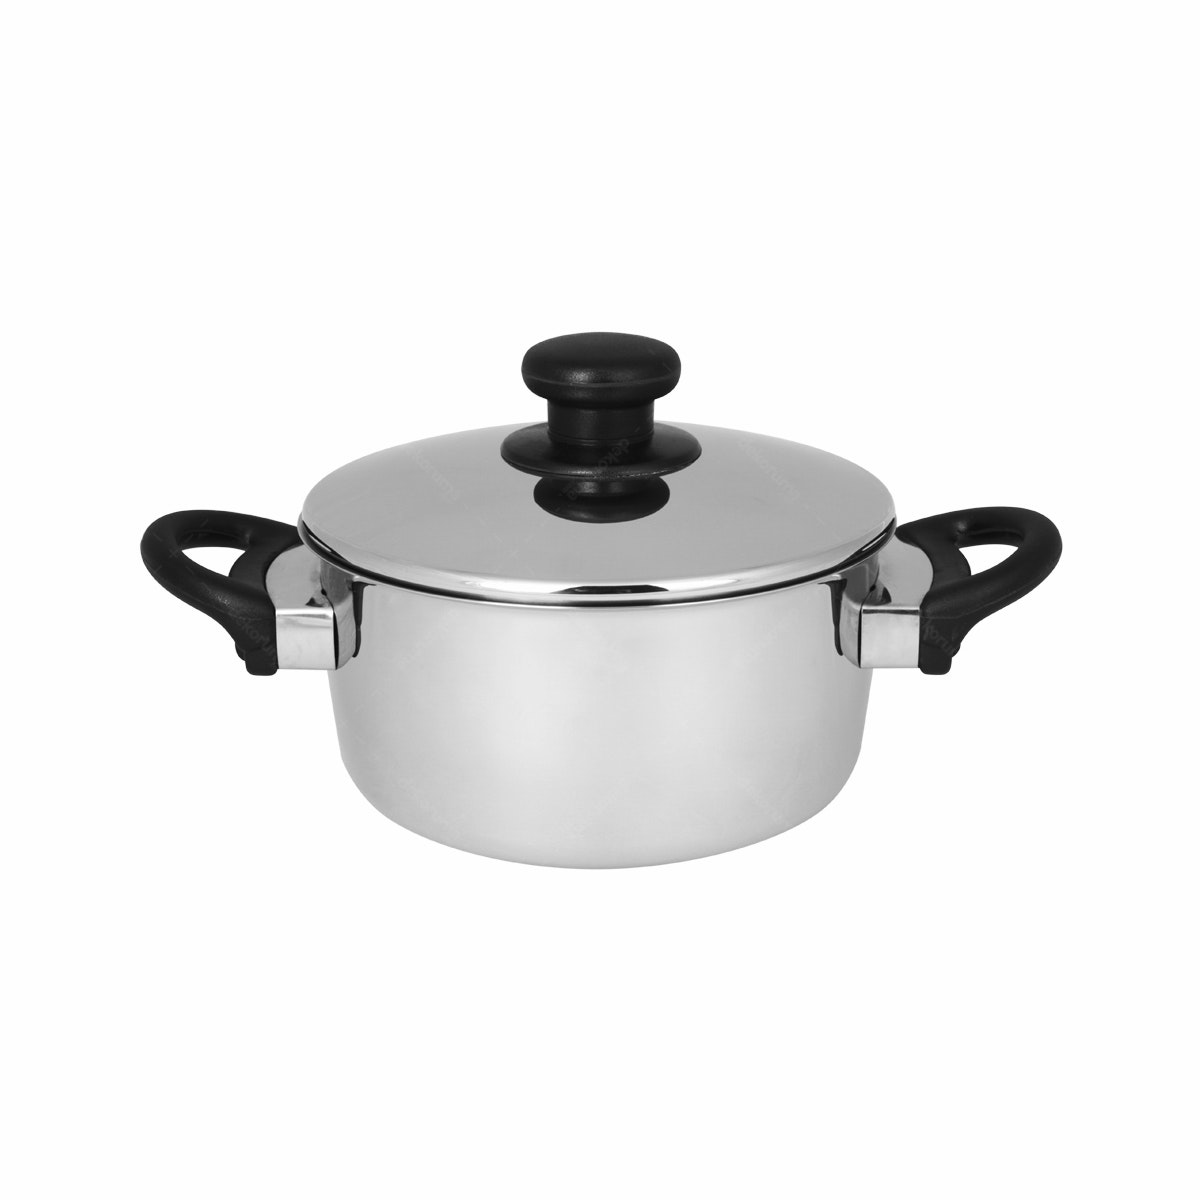 Master Chef Stainless Dutchoven 18cm Tutup Stainless